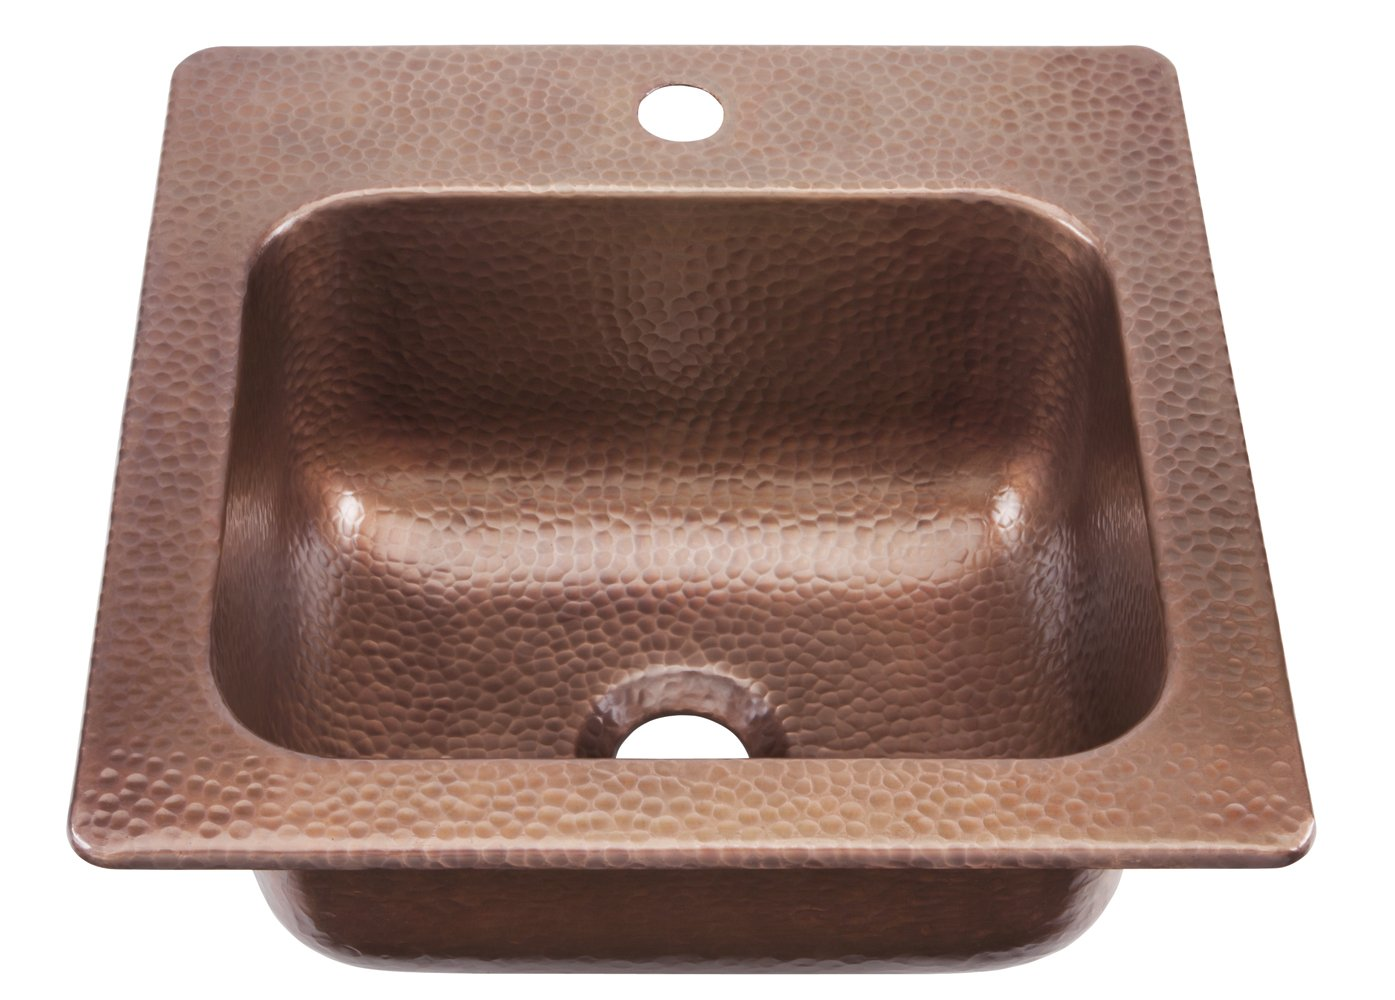 Sinkology KPD 1515HA Seurat Drop In Handmade Pure Solid Copper 15 In.  1 Hole Bar Copper Sink In Antique Copper   Bar Sinks   Amazon.com